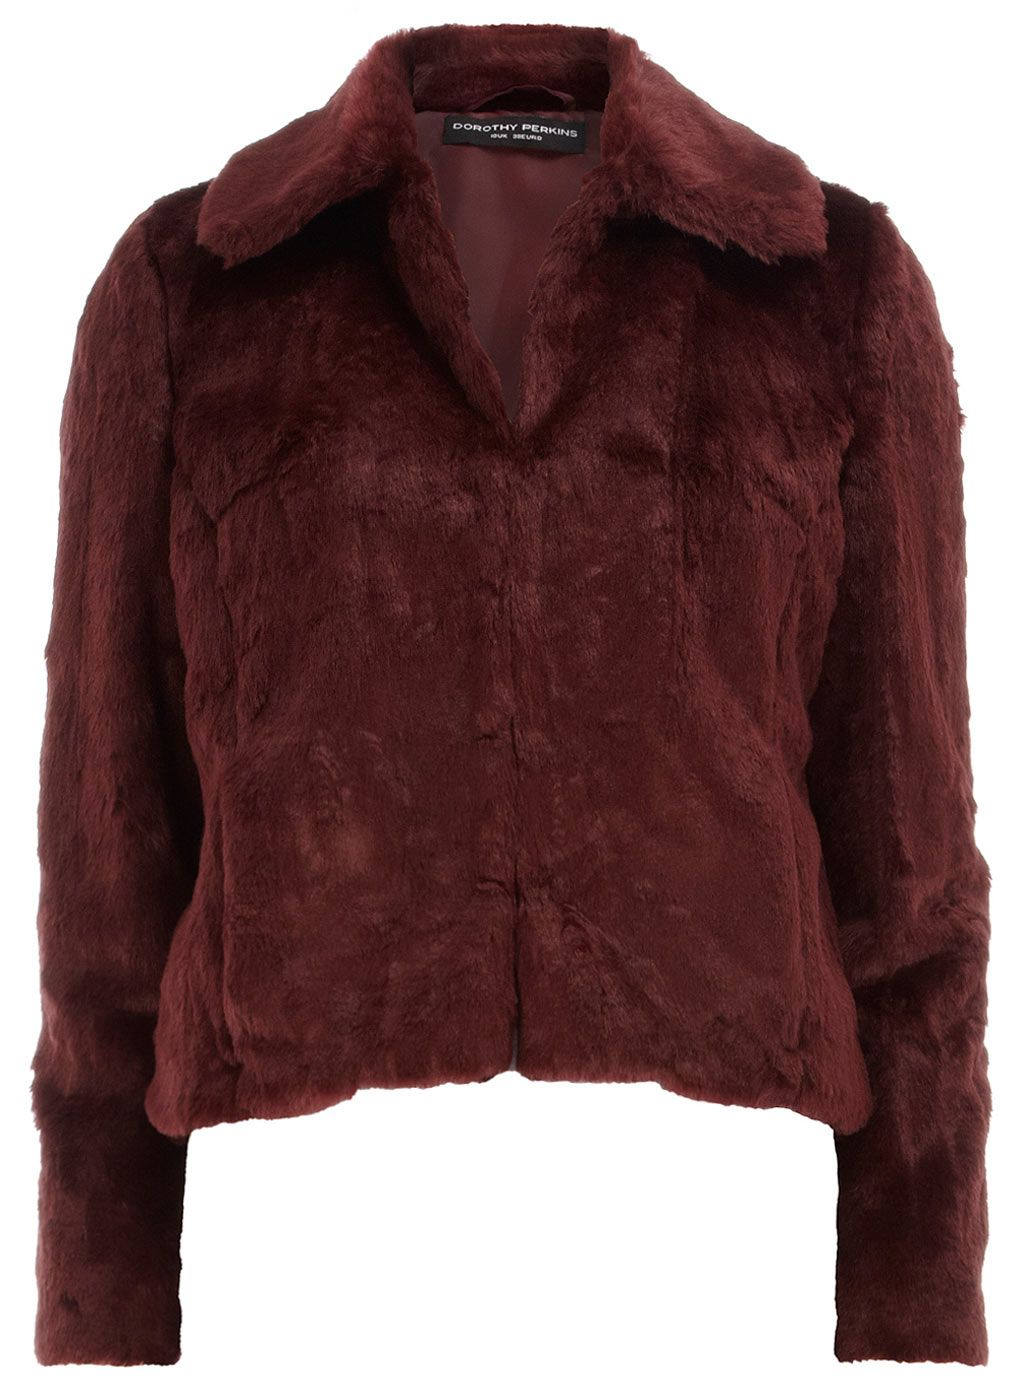 Red chubby fur jacket: Add some sophistication with this red coloured faux fur jacket with a hook and eye fastening. In a slightly cropped style with long sleeves and collar this jacket has a classic shape, perfect to layer over a simple top.